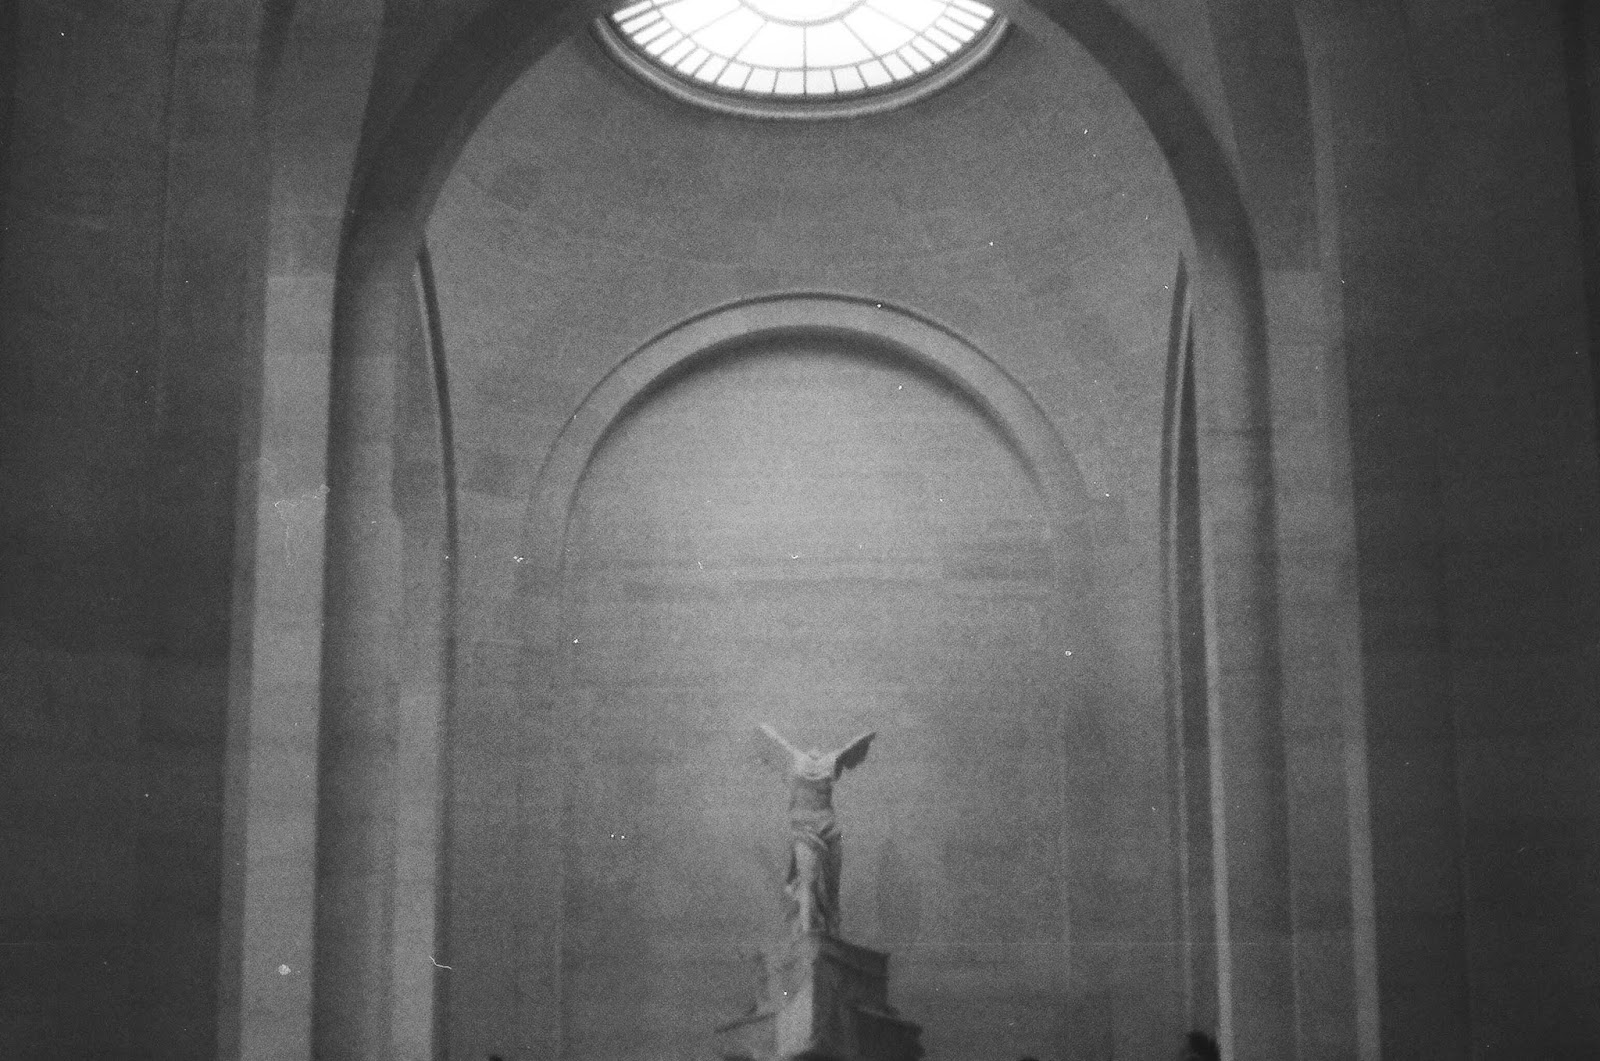 Paris Louvre film